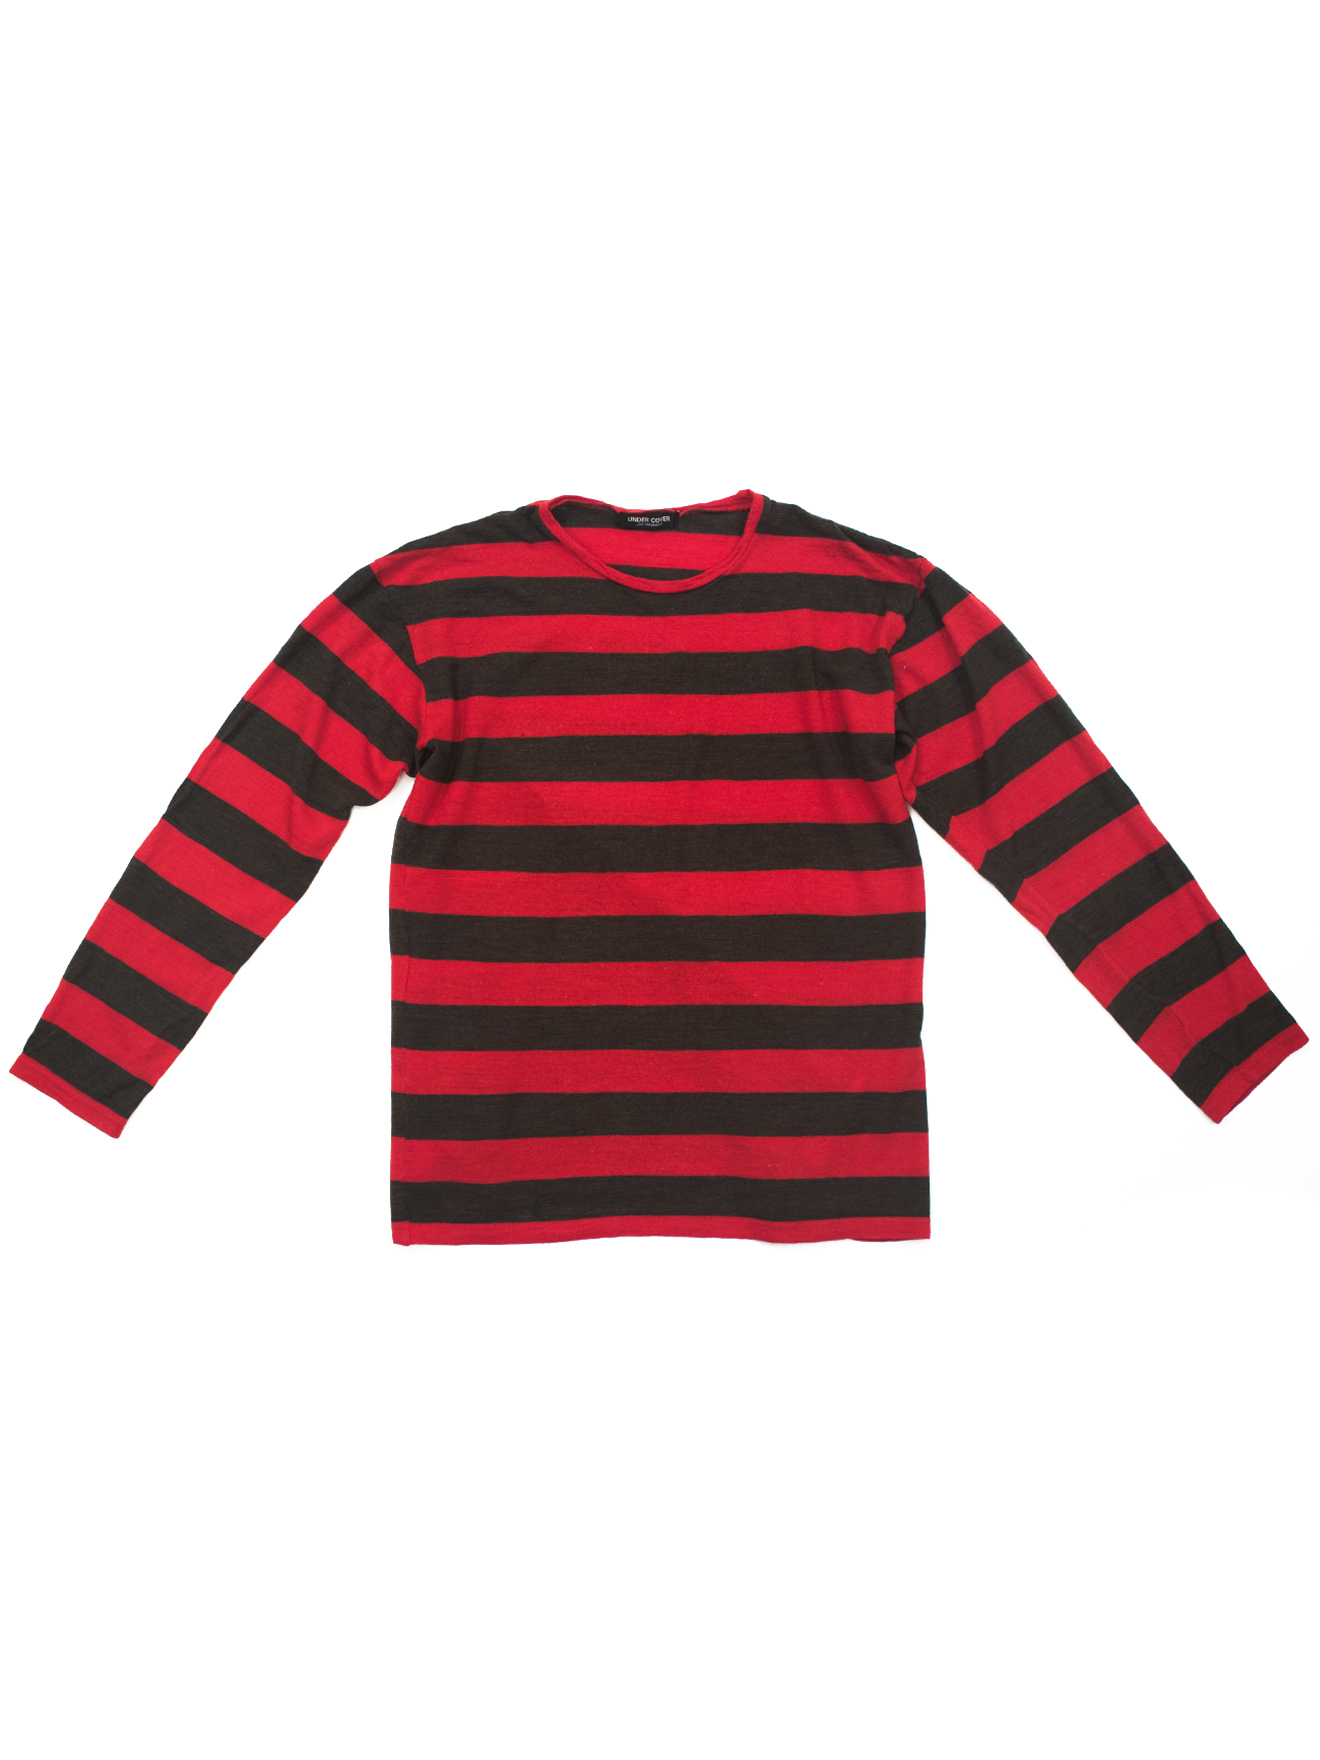 """4ec120aab84a Undercover AW1997 """"LEAF"""" RED   BLACK STRIPED LONG SLEEVE SHIRT Size ..."""